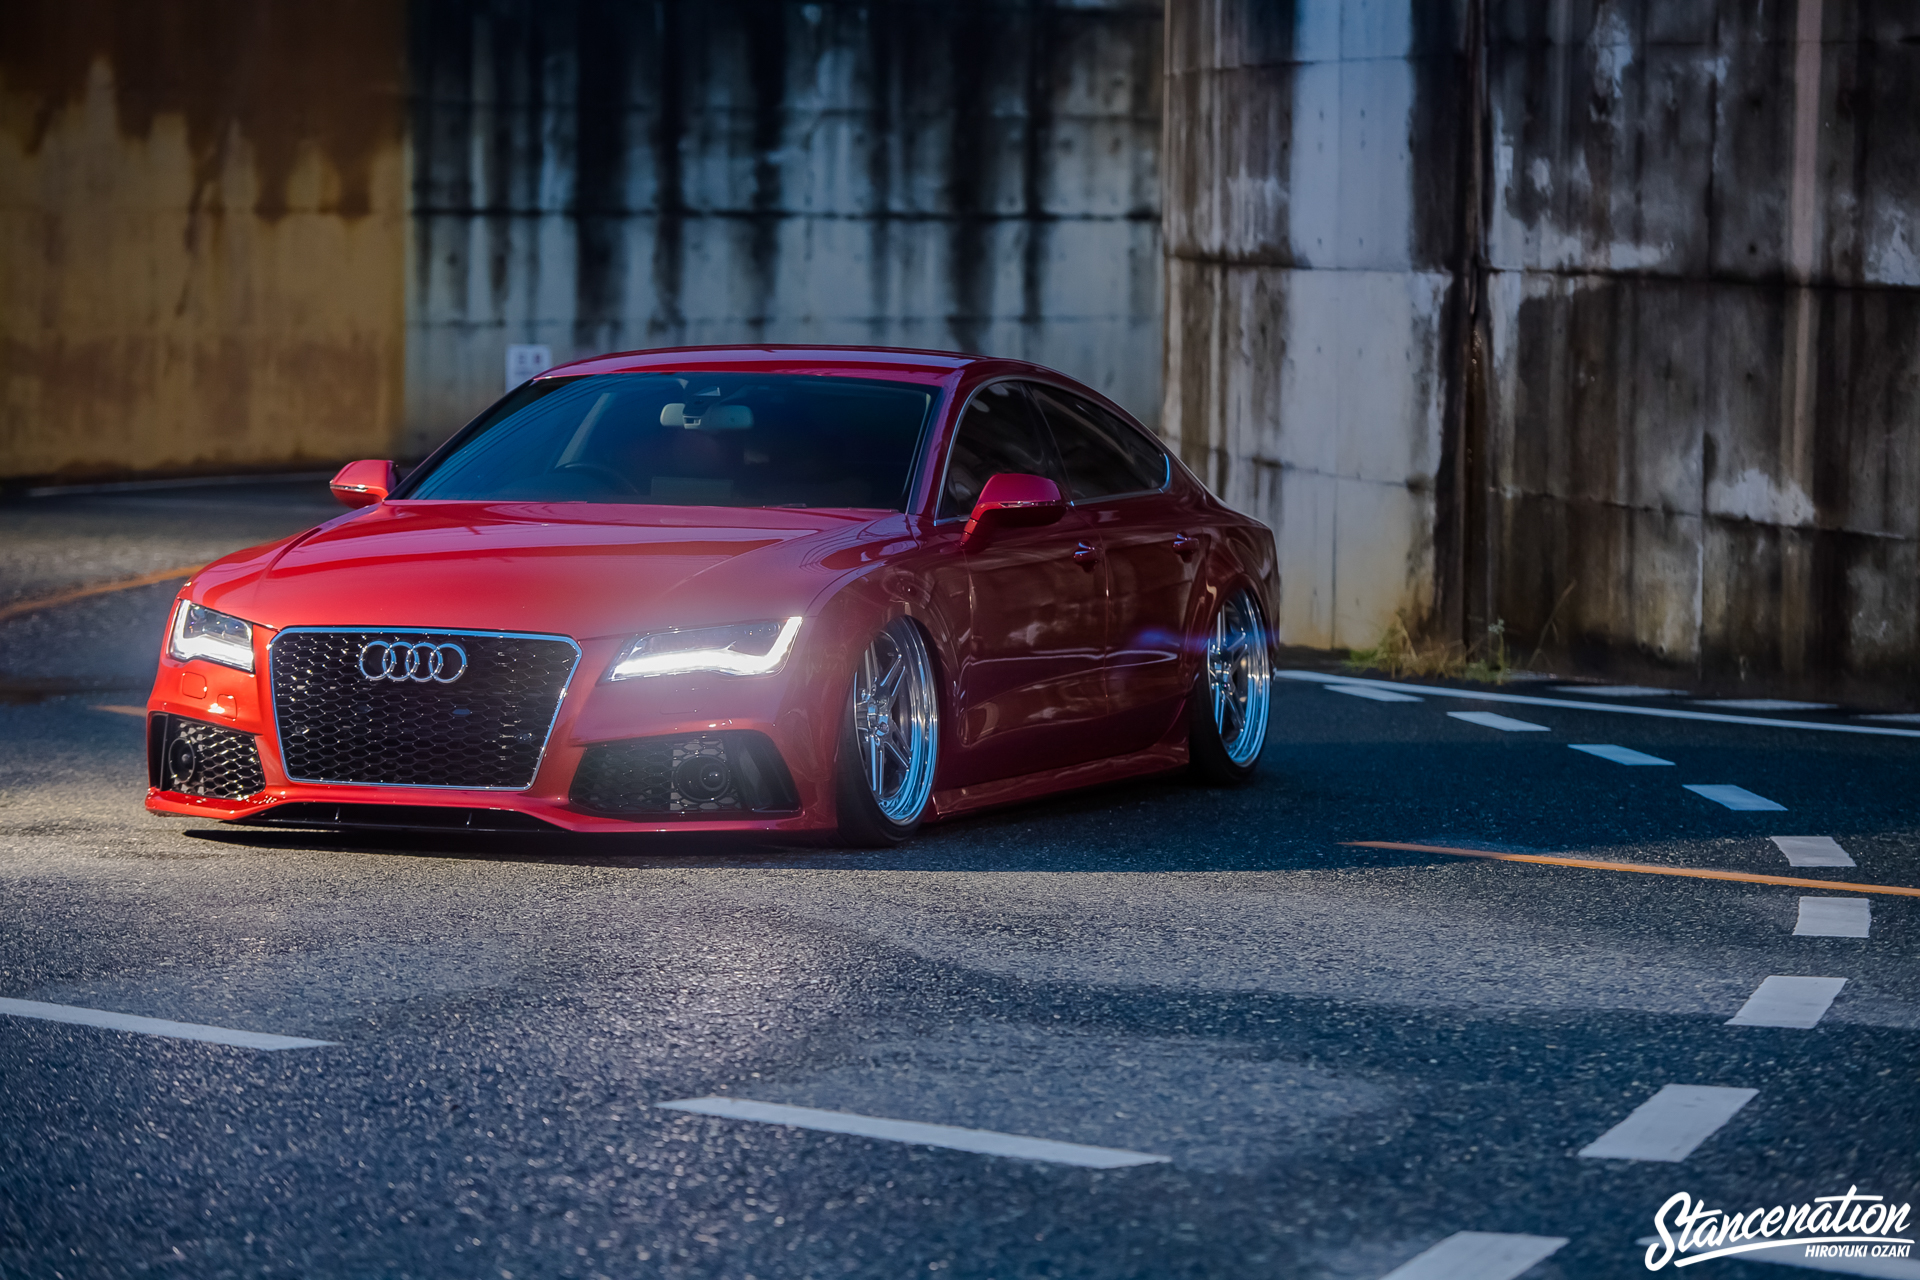 Vw Owns What >> Fat Lines // Yuuki Nakano's Bagged Audi A7. | StanceNation™ // Form > Function